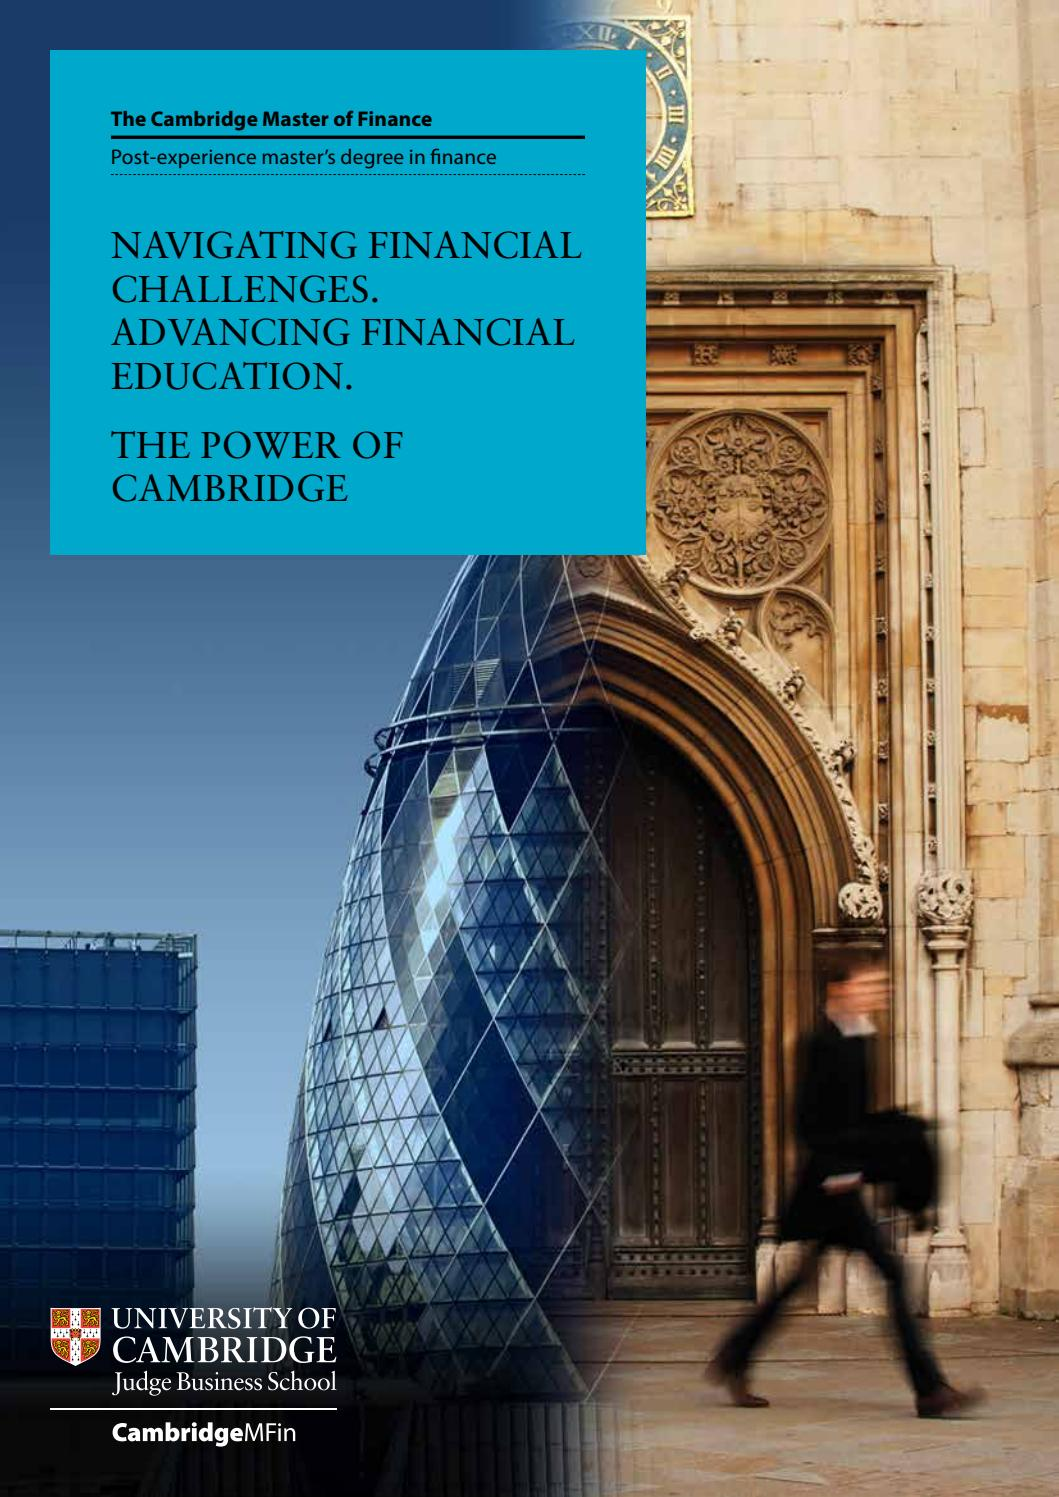 management degree judging a book by its cover the top the design book The Cambridge Master of Finance Brochure by Cambridge Judge Business School  - issuu